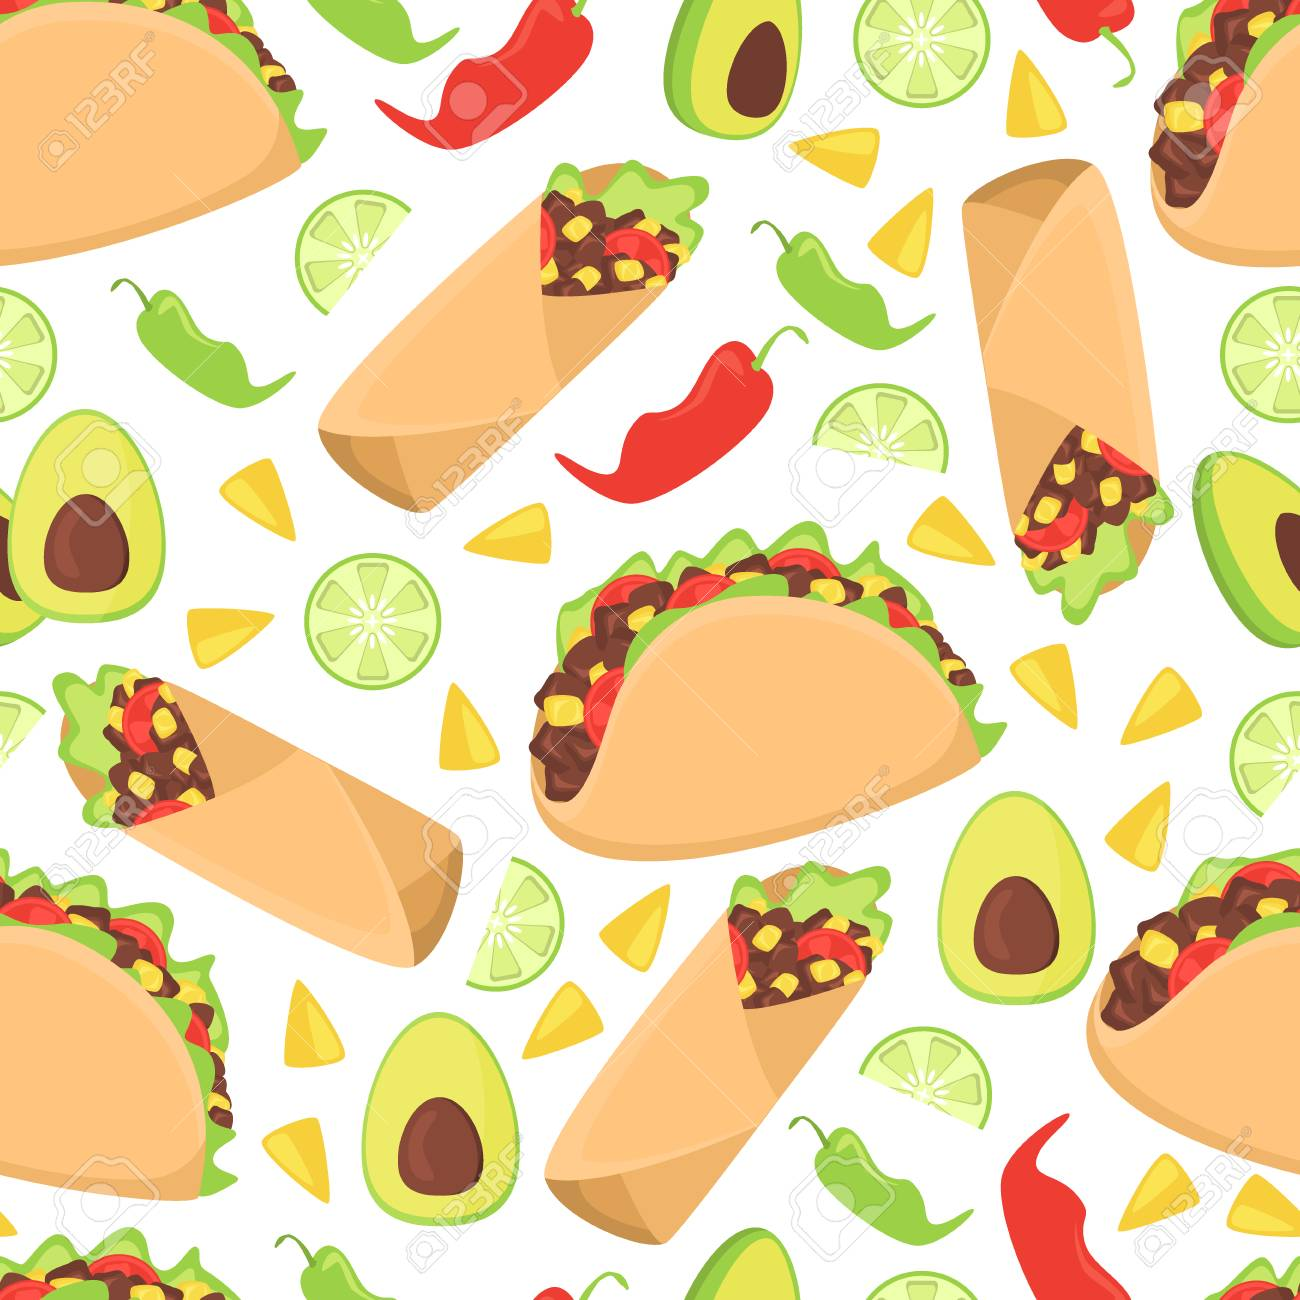 Mexican food seamless pattern fresh chili nachos vector illustration. Traditional mexico culture spicy burrito background. Tasty latin meal lunch wallpaper cooking cuisine. - 114688117